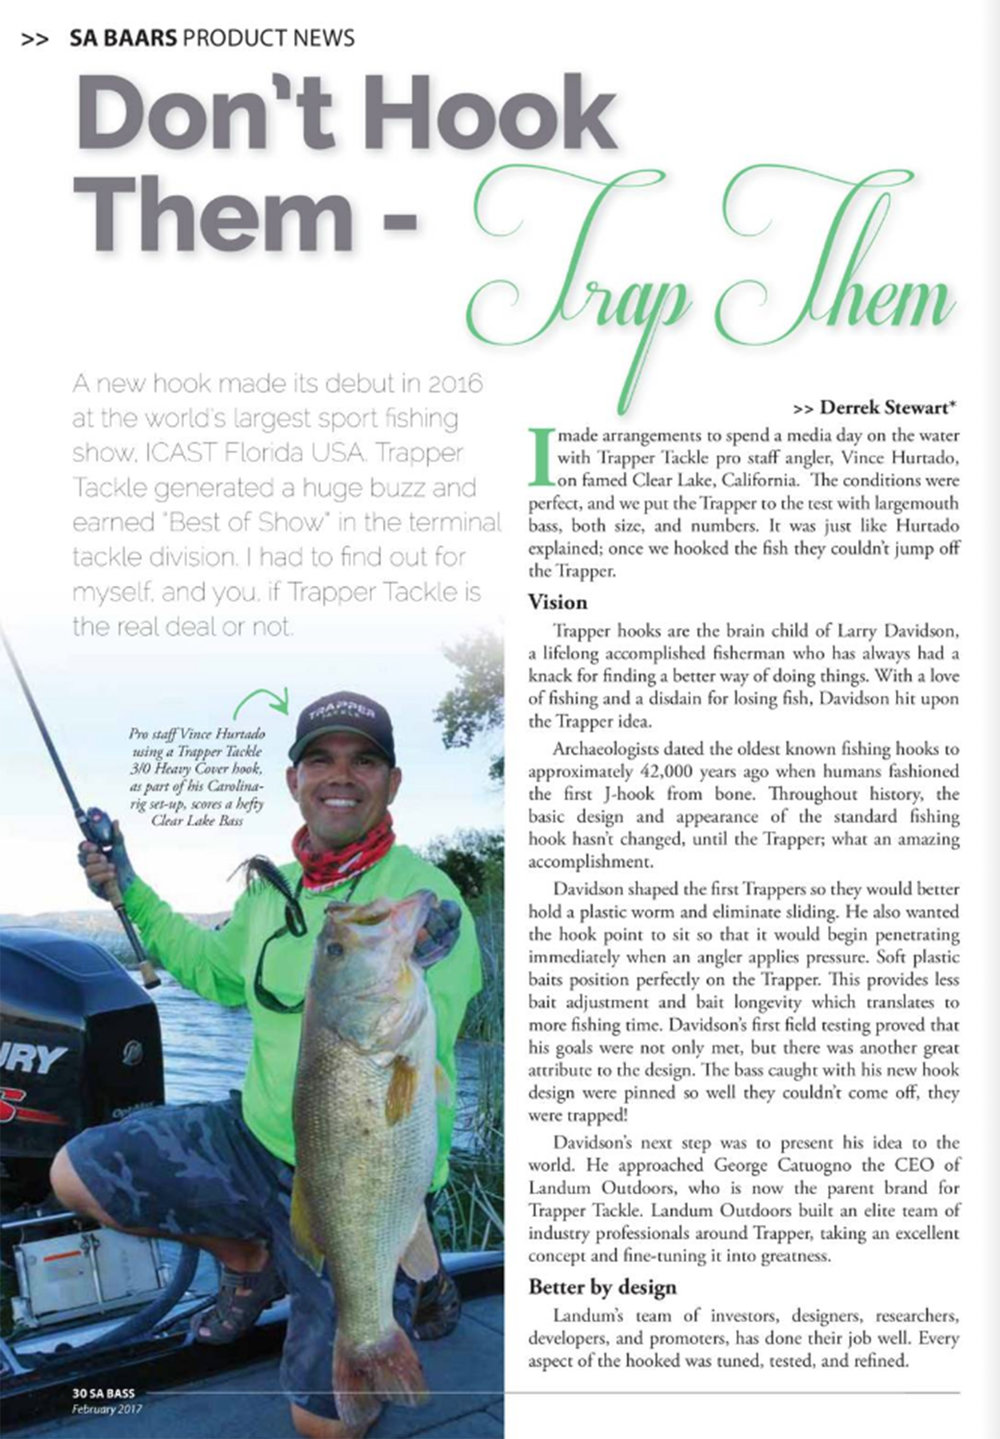 That's Trapper Tackle's Emissary and Expert Angler Vince Hurtado holding a stout Clear Lake California Trapper Catch.